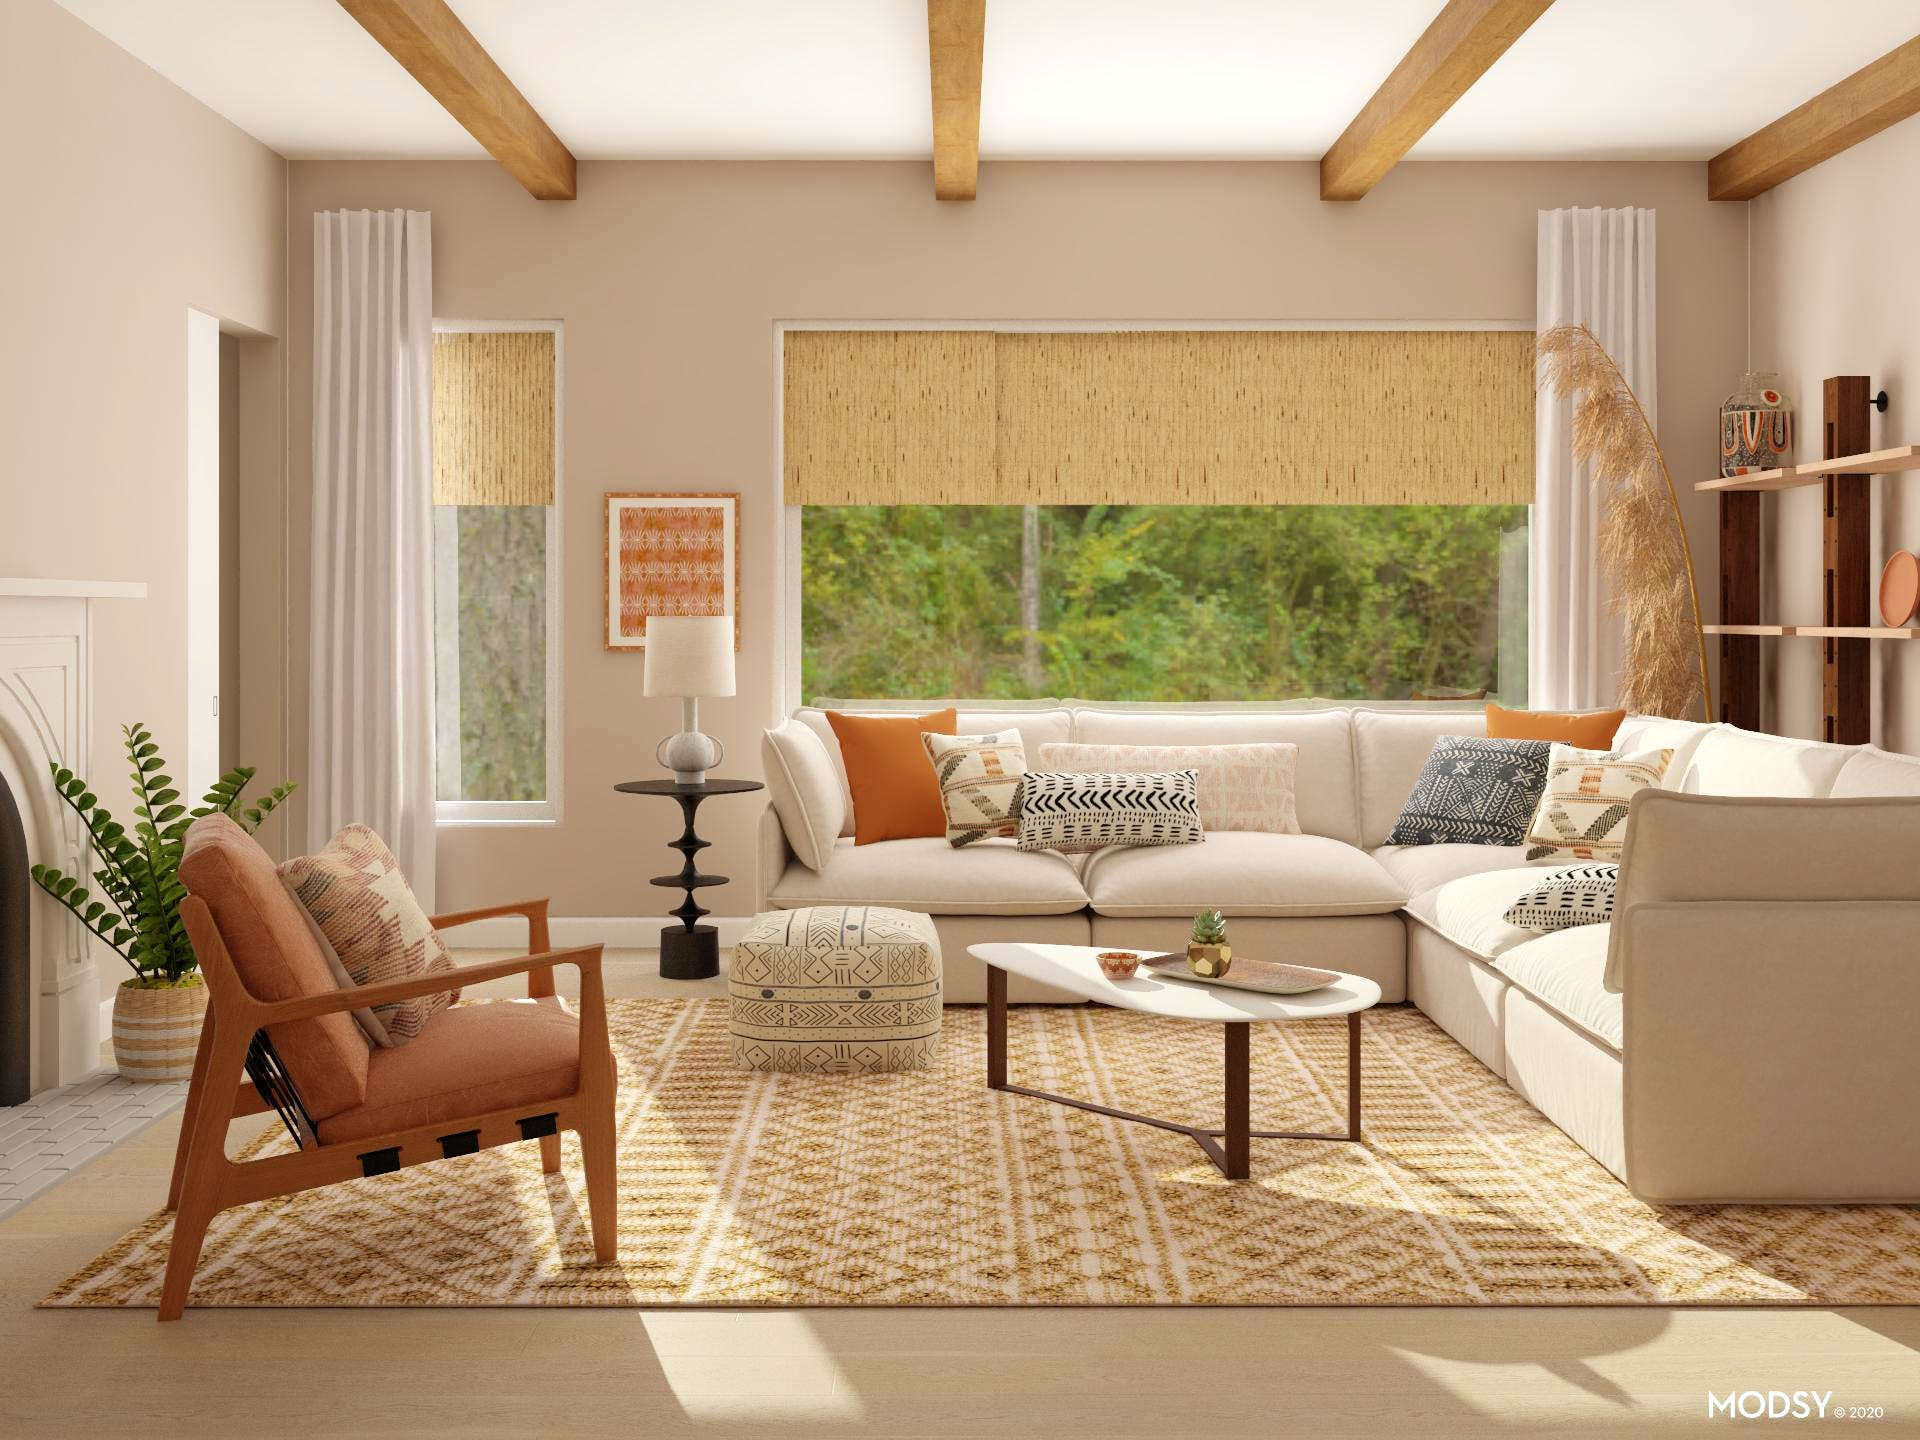 Bring On The Boho: Living Room Design